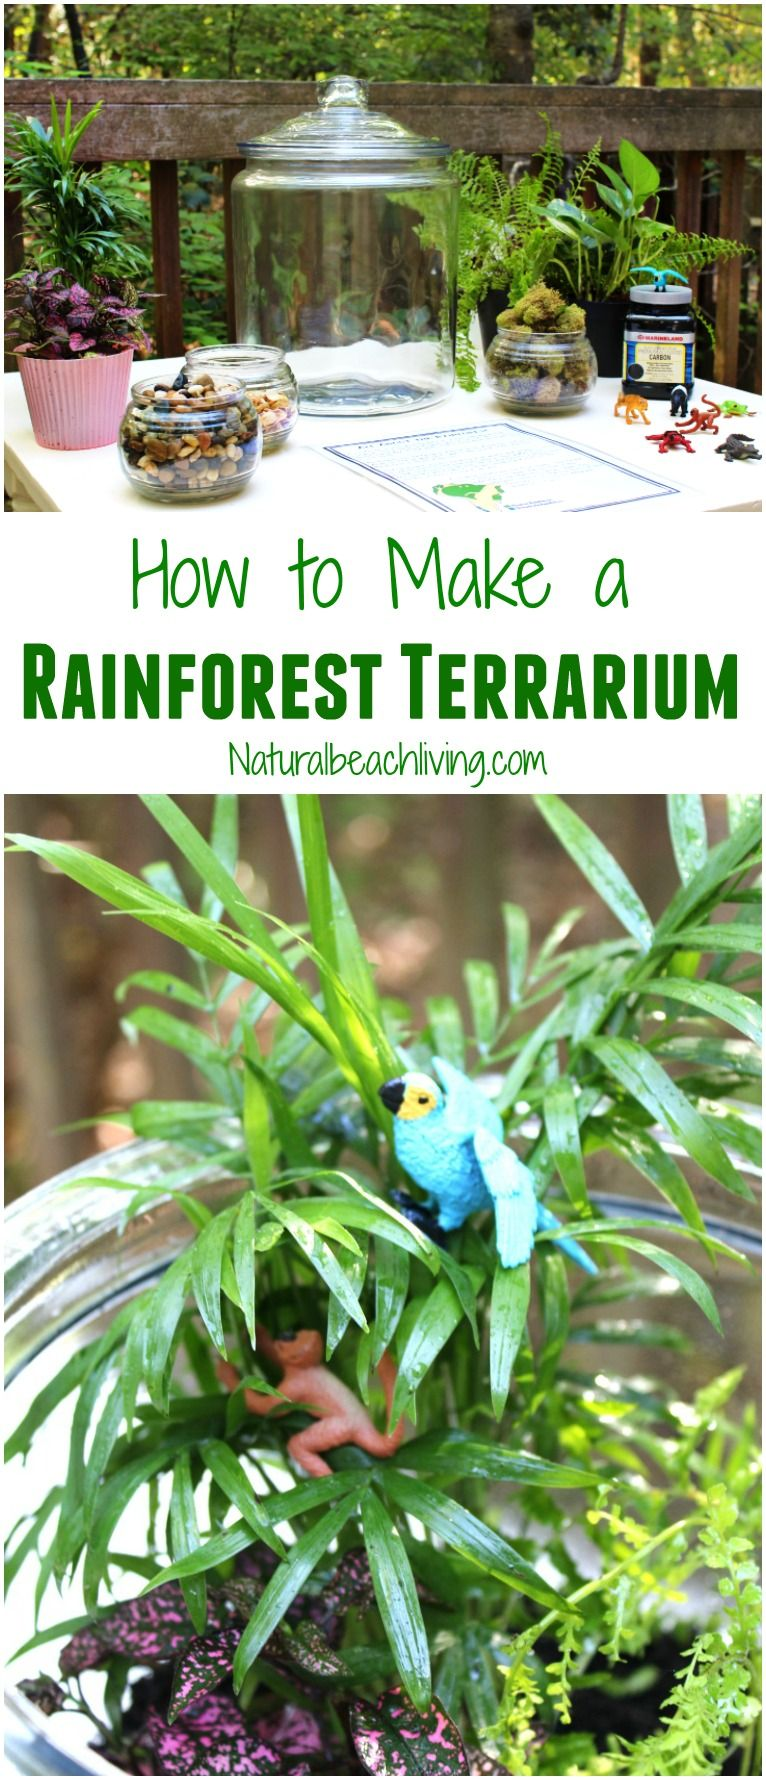 how to make a rainforest terrarium with kids | natural beach living